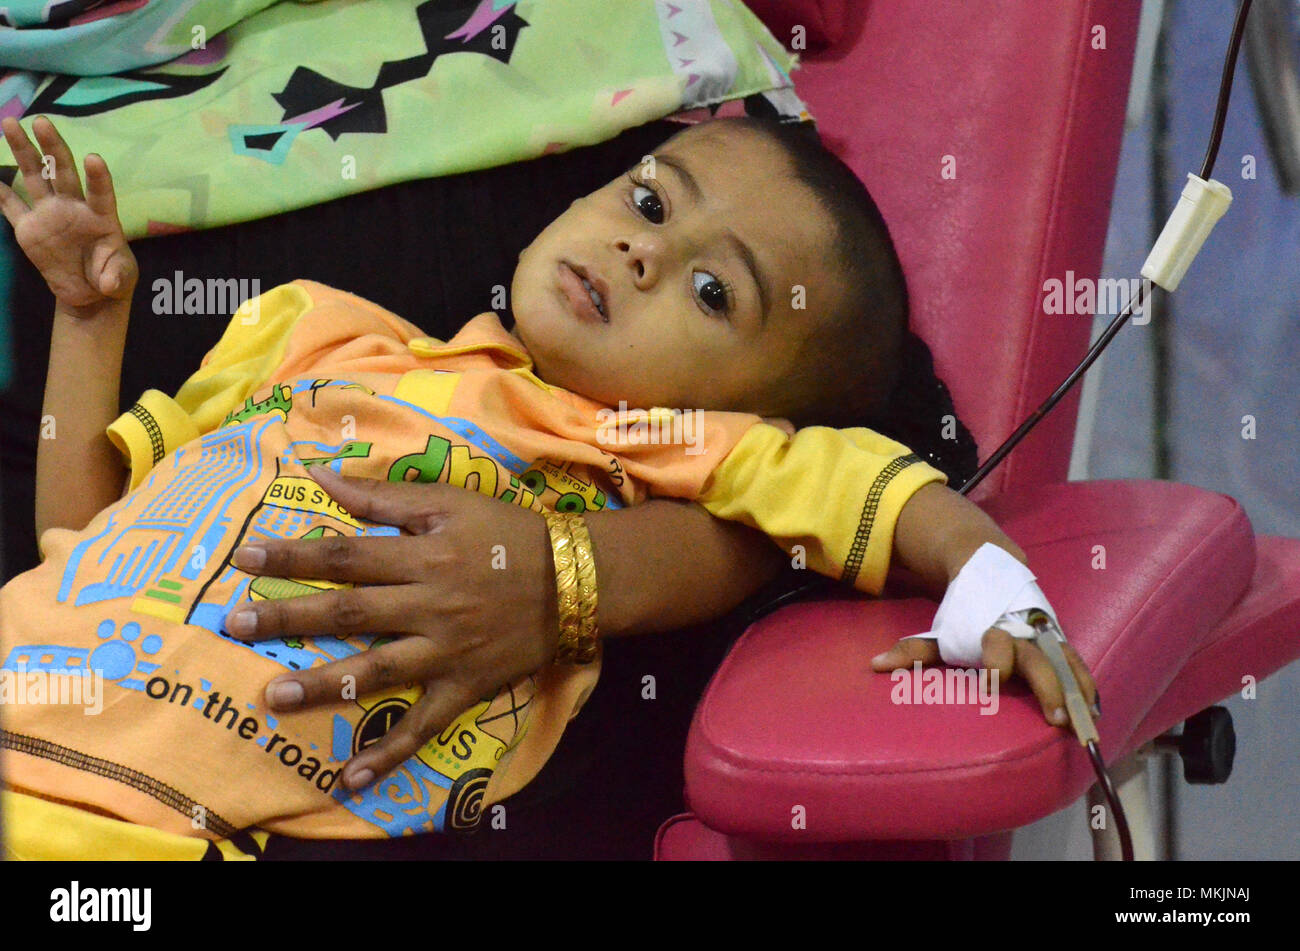 (180508) -- LAHORE, May 8, 2018 (Xinhua) -- A Pakistani patient suffering from thalassemia receives blood at a medical center on World Thalassemia Day in eastern Pakistan's Lahore on May 8, 2018. Thalassemia, also called Mediterranean anemia, is an inherited and non-infectious blood disorder. (Xinhua/Jamil Ahmed)(yk) - Stock Image